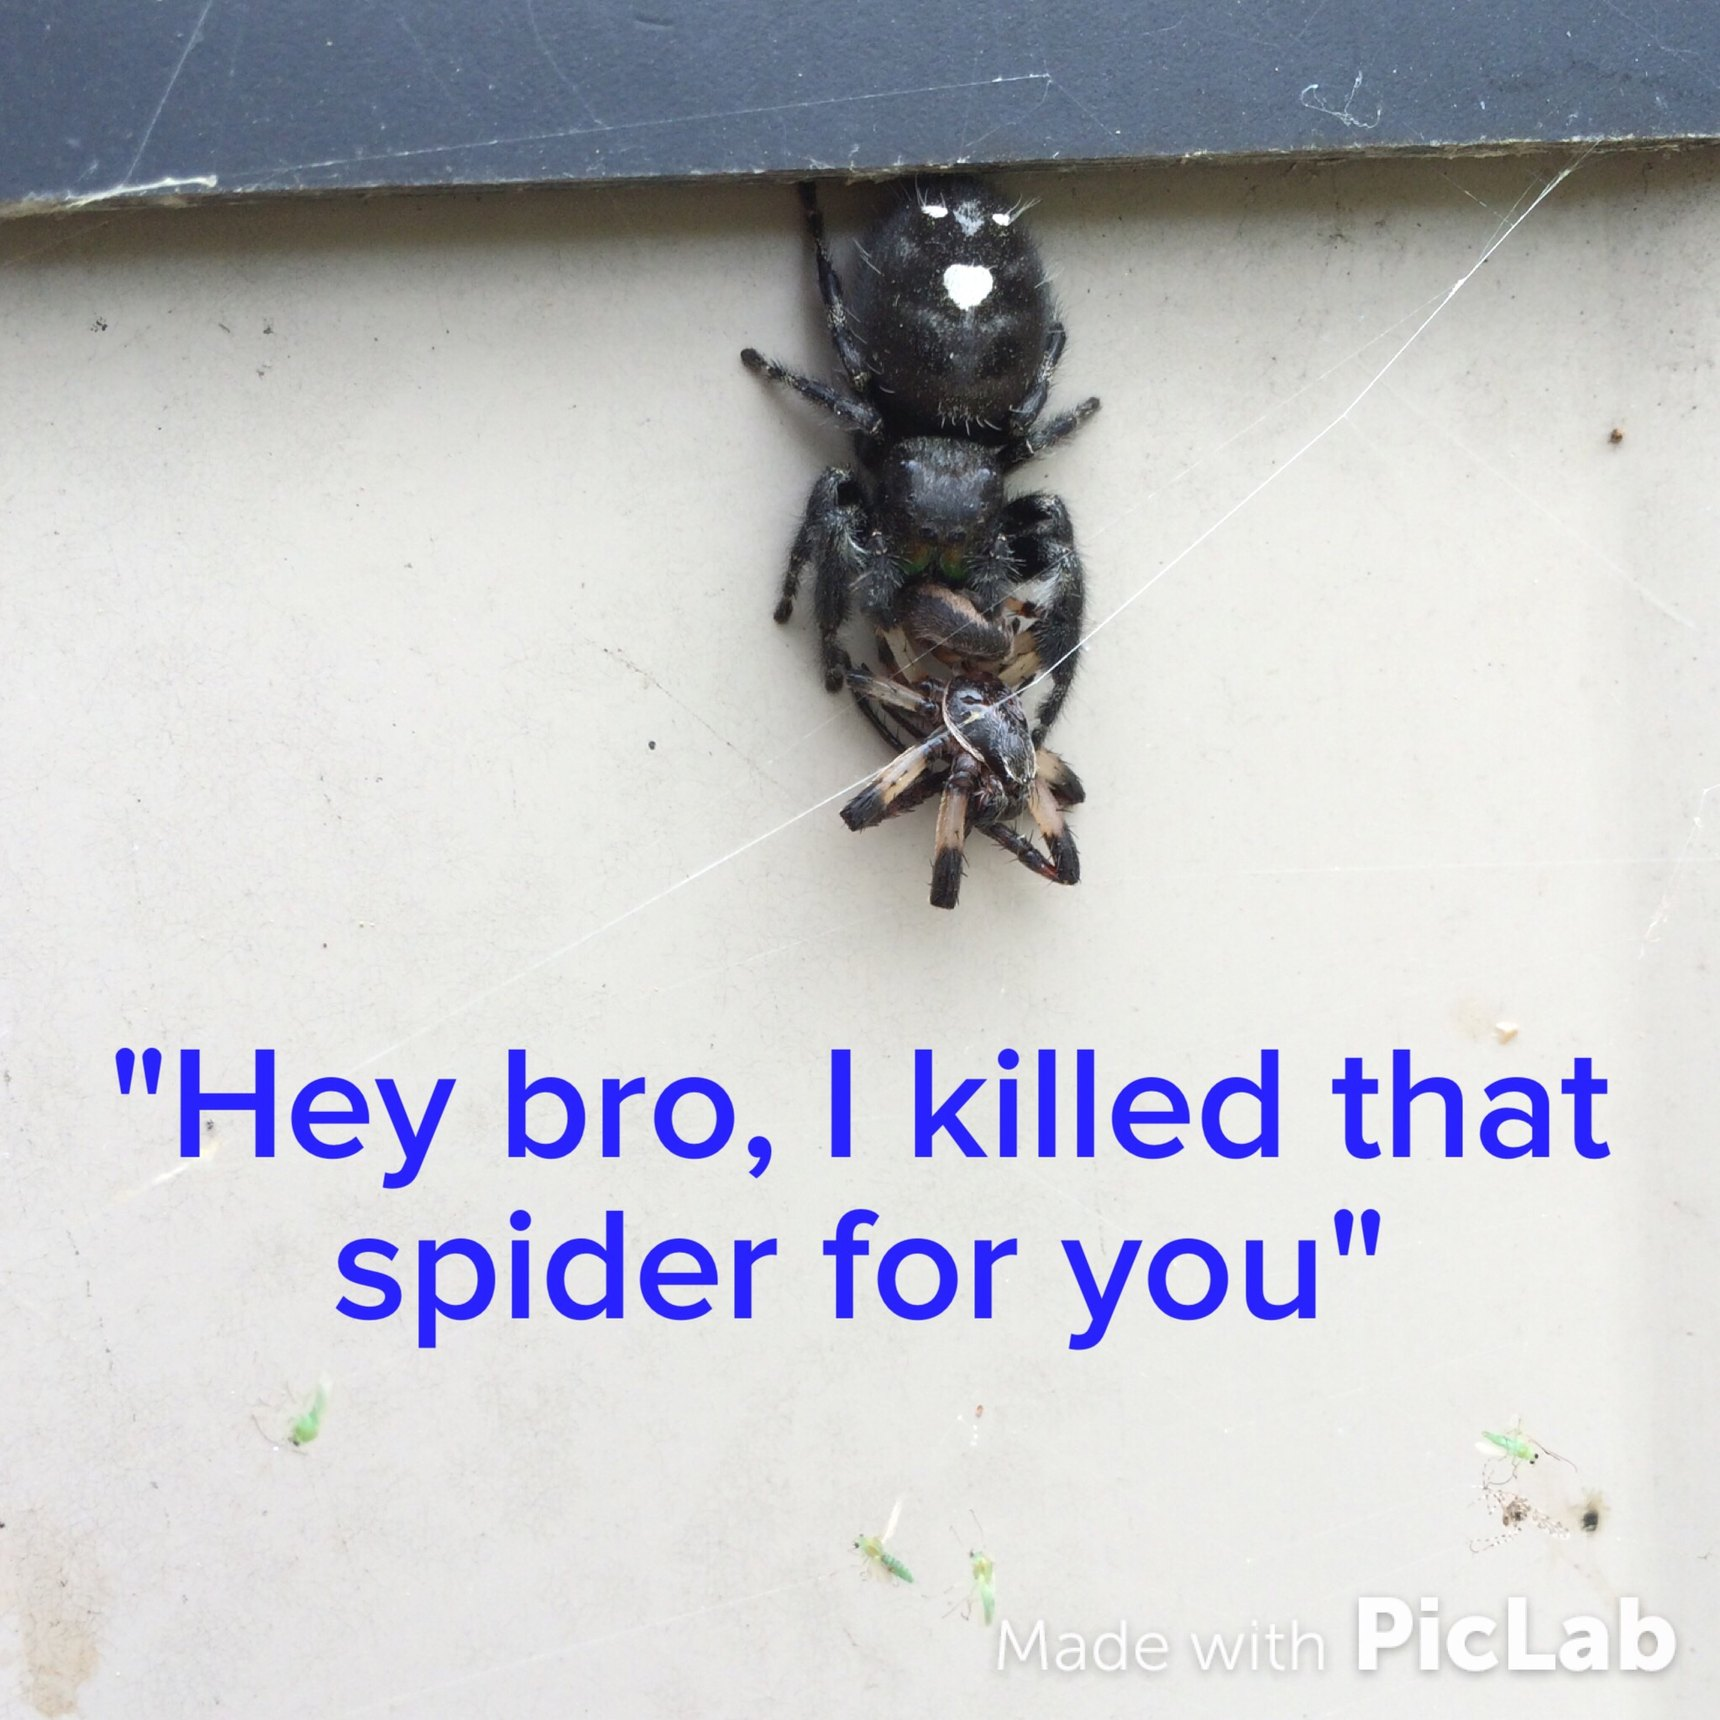 Spider buddy kills spiders for you - meme